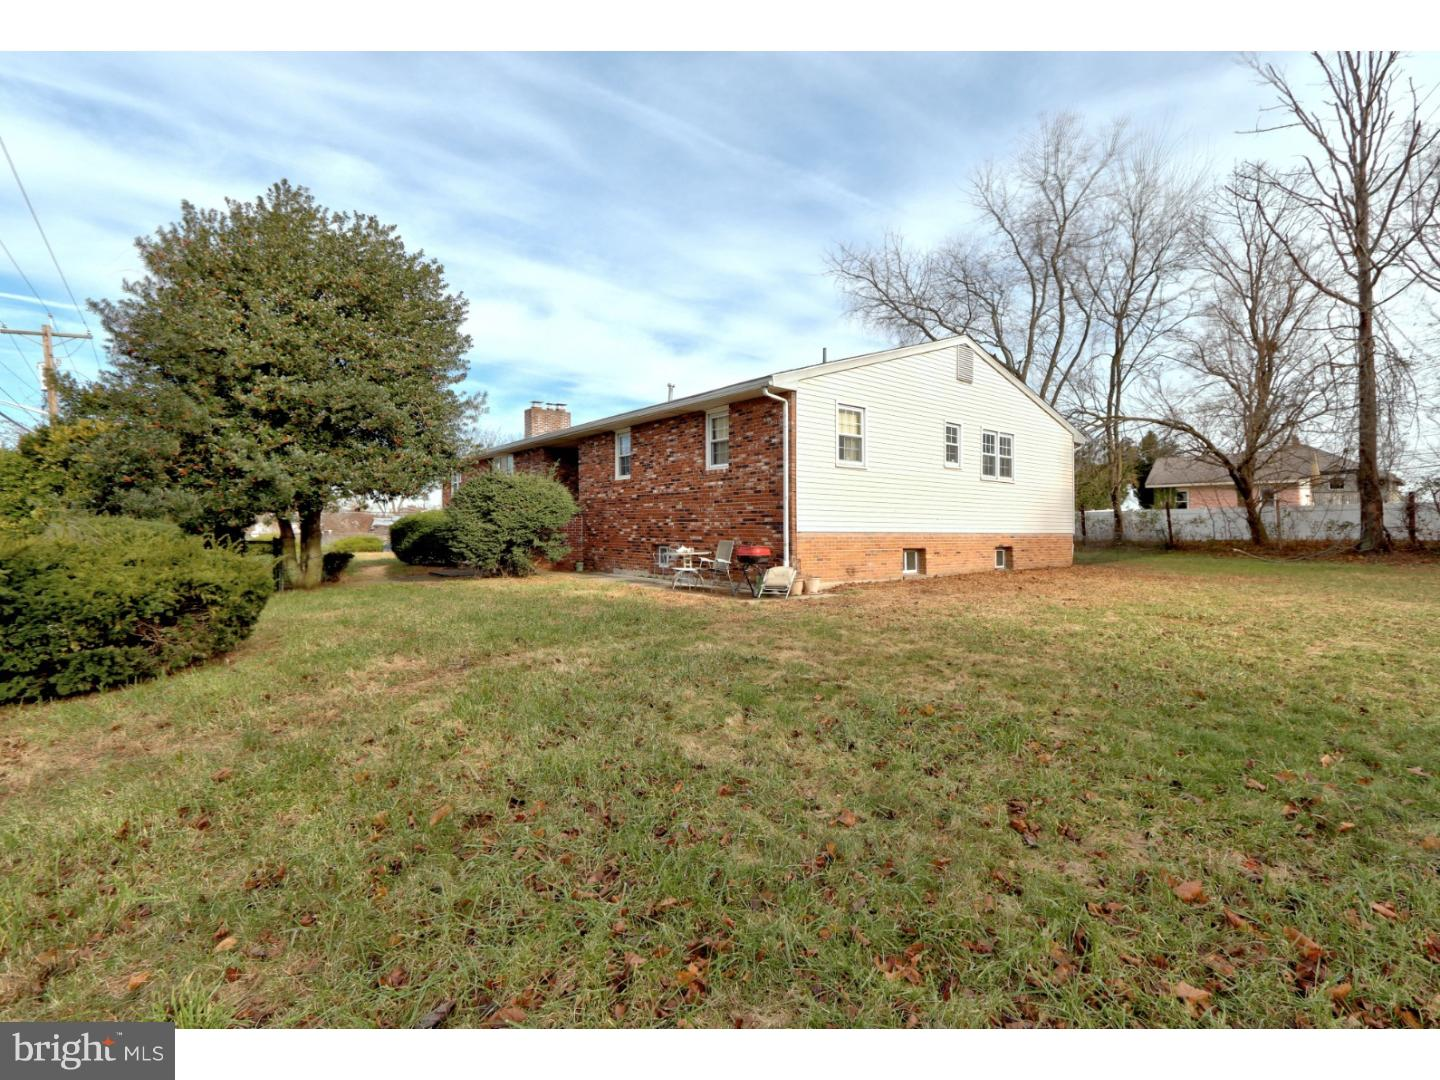 Single Family Home for Sale at 7 COOPER Street Burlington Township, New Jersey 08016 United States